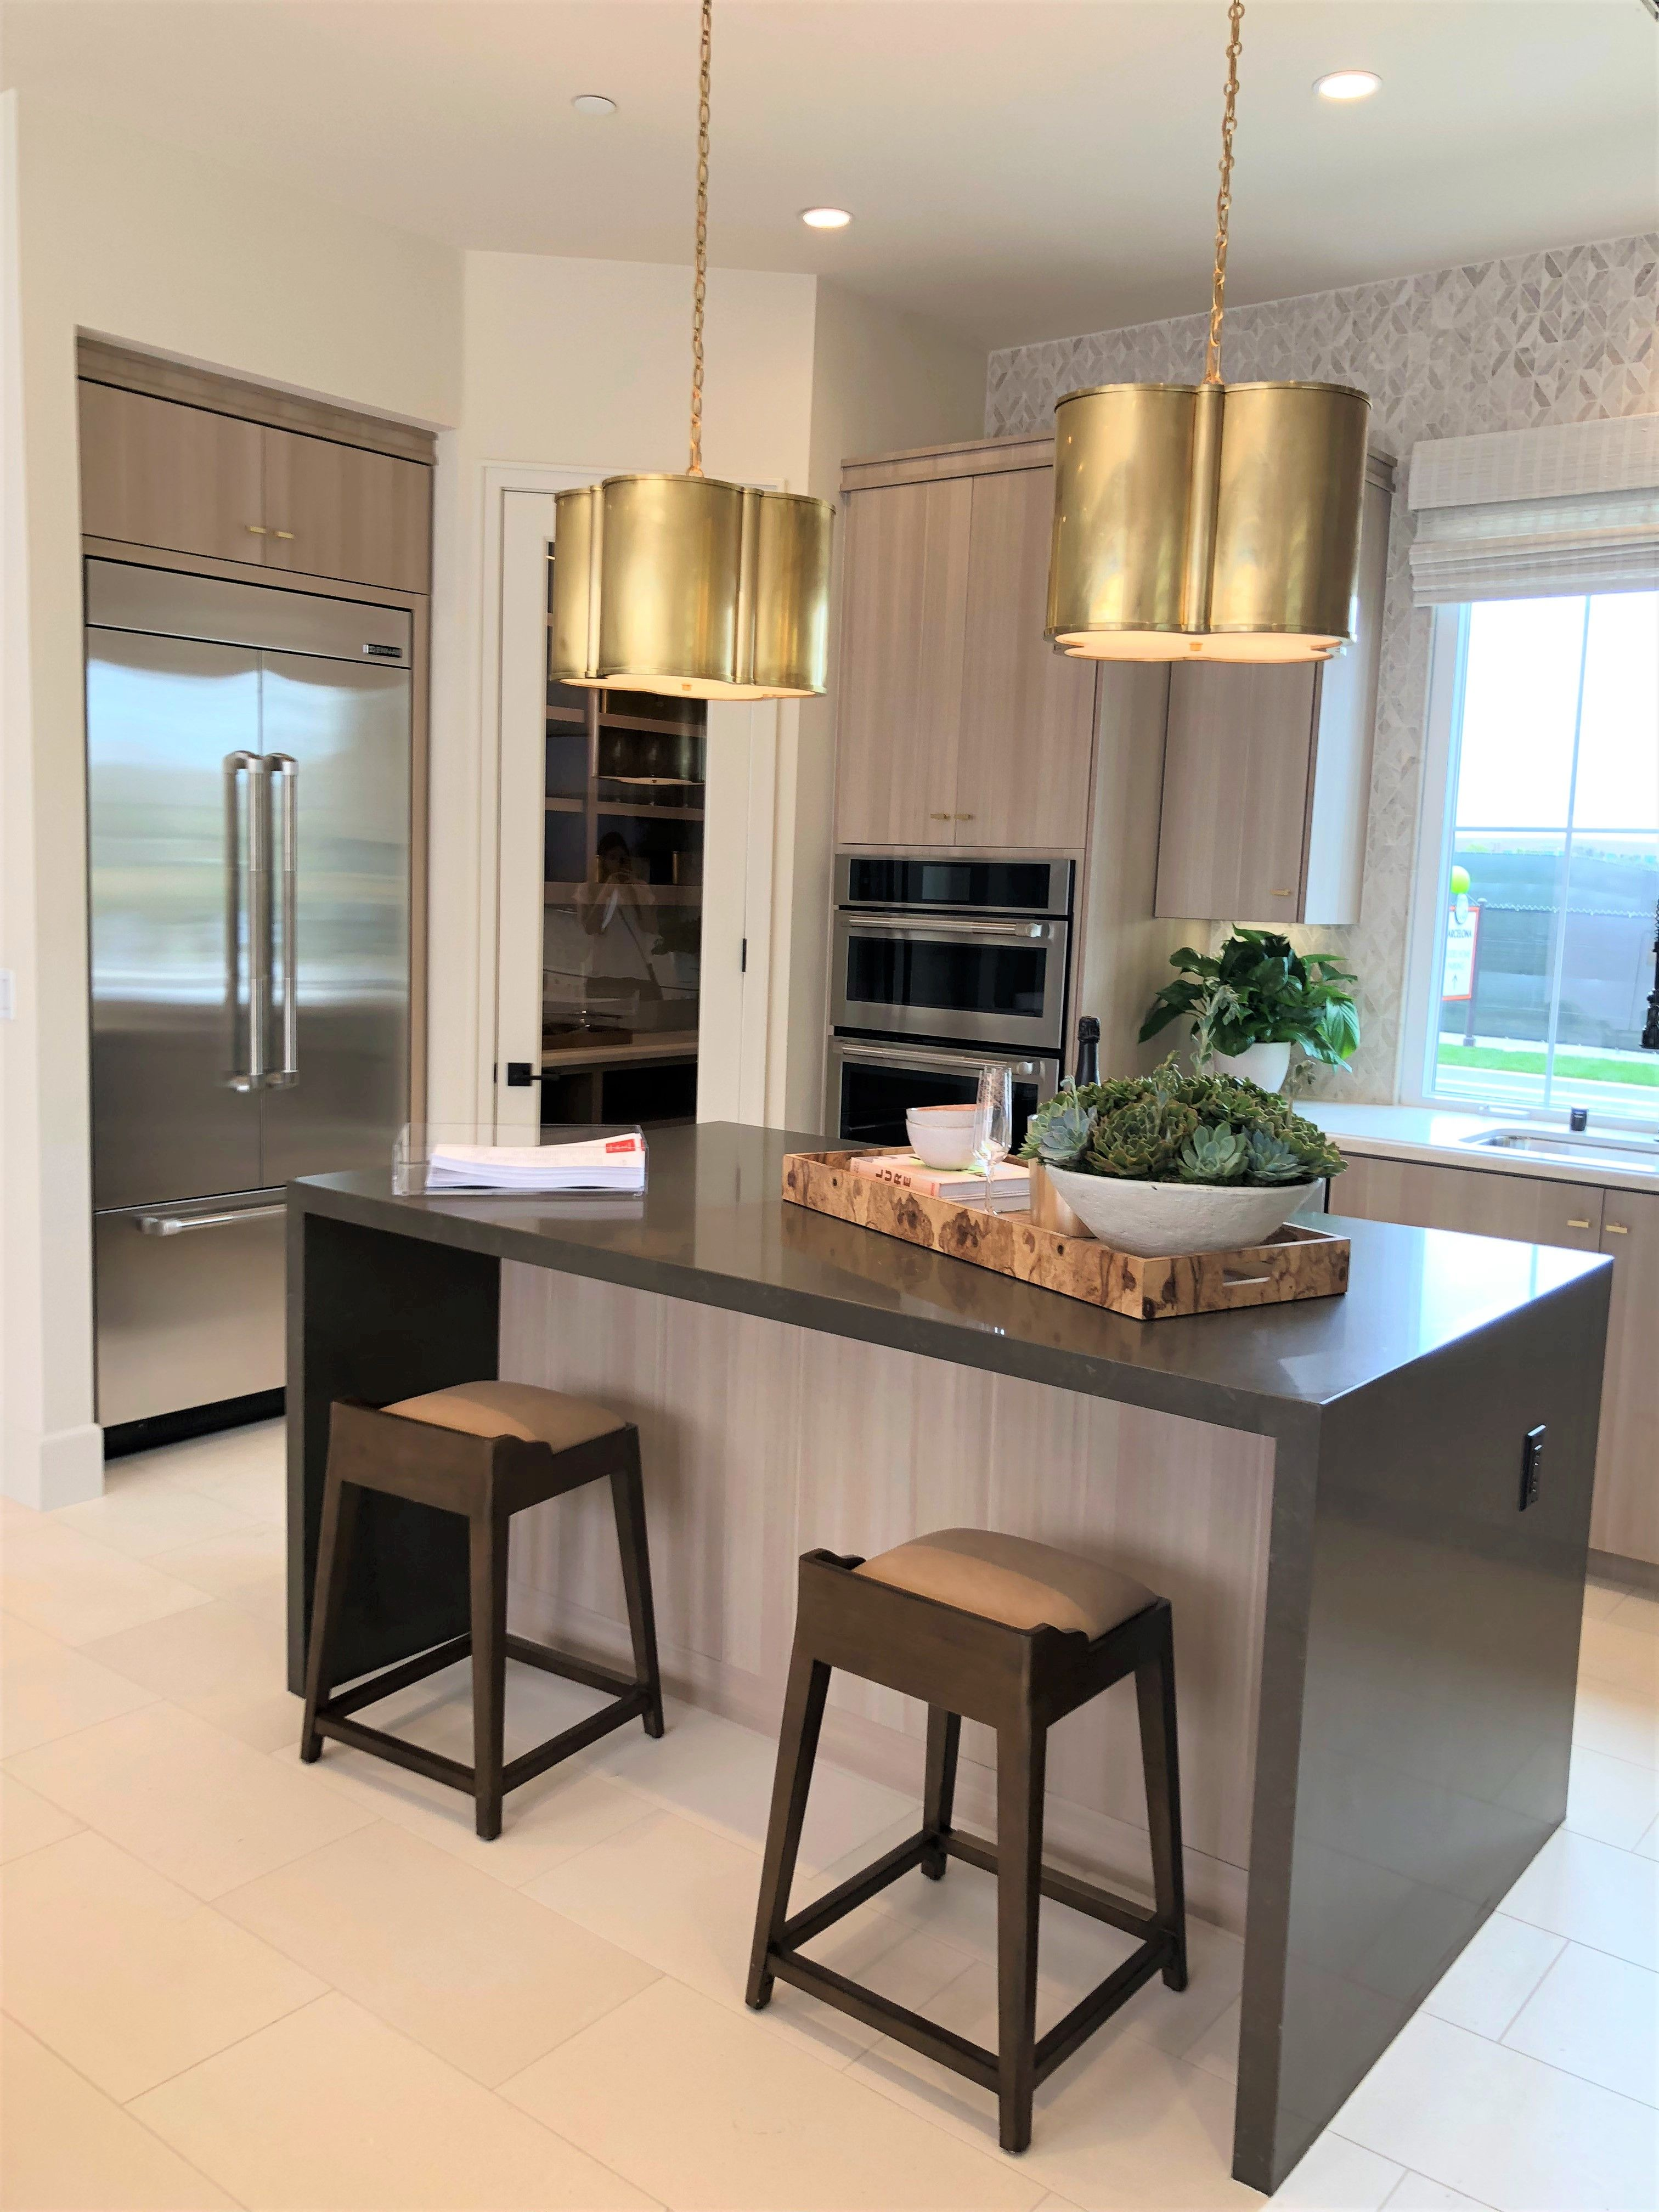 Spacious Kitchen With Modern Appliances At Barcelona At Los Olivos